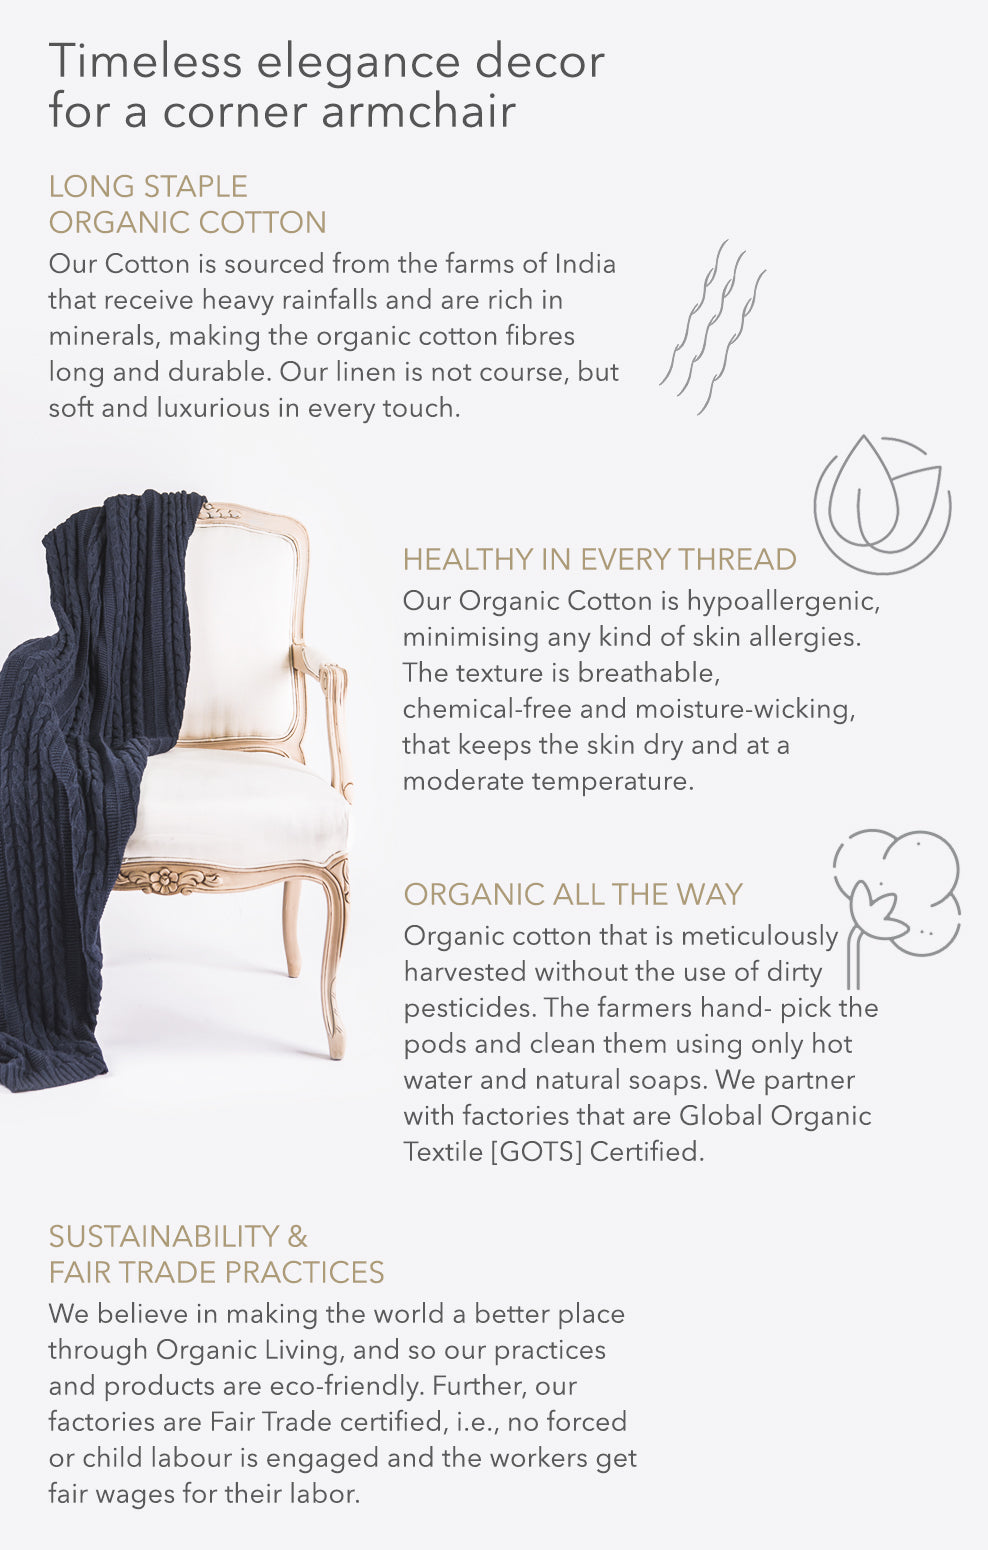 Cable Knit Organic Cotton Throws